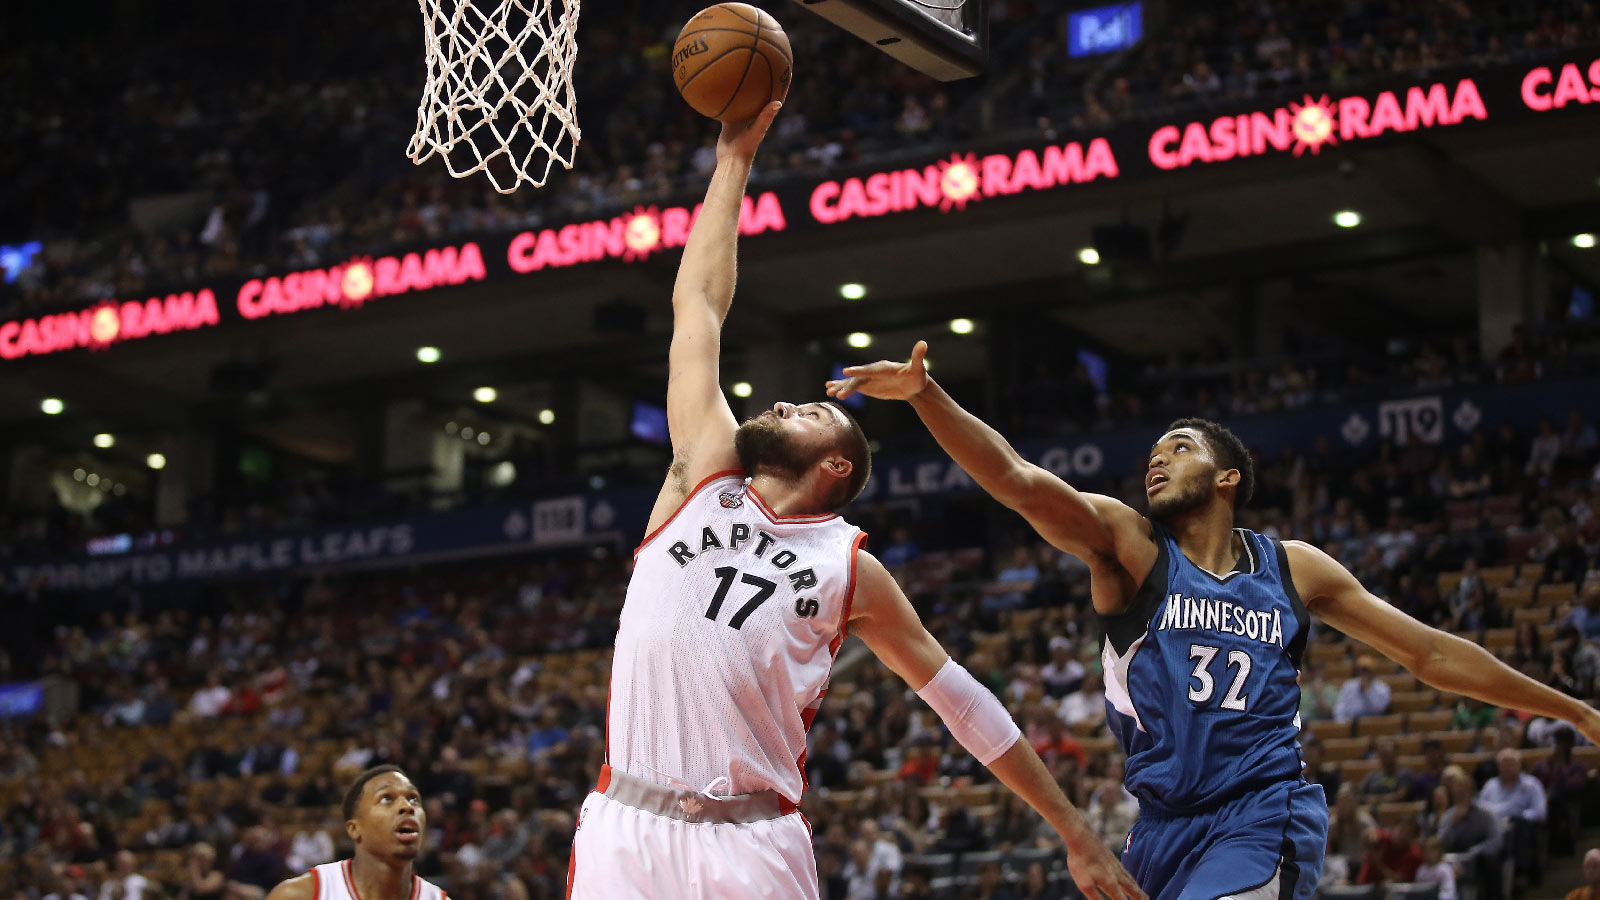 Preview: Timberwolves vs. Raptors